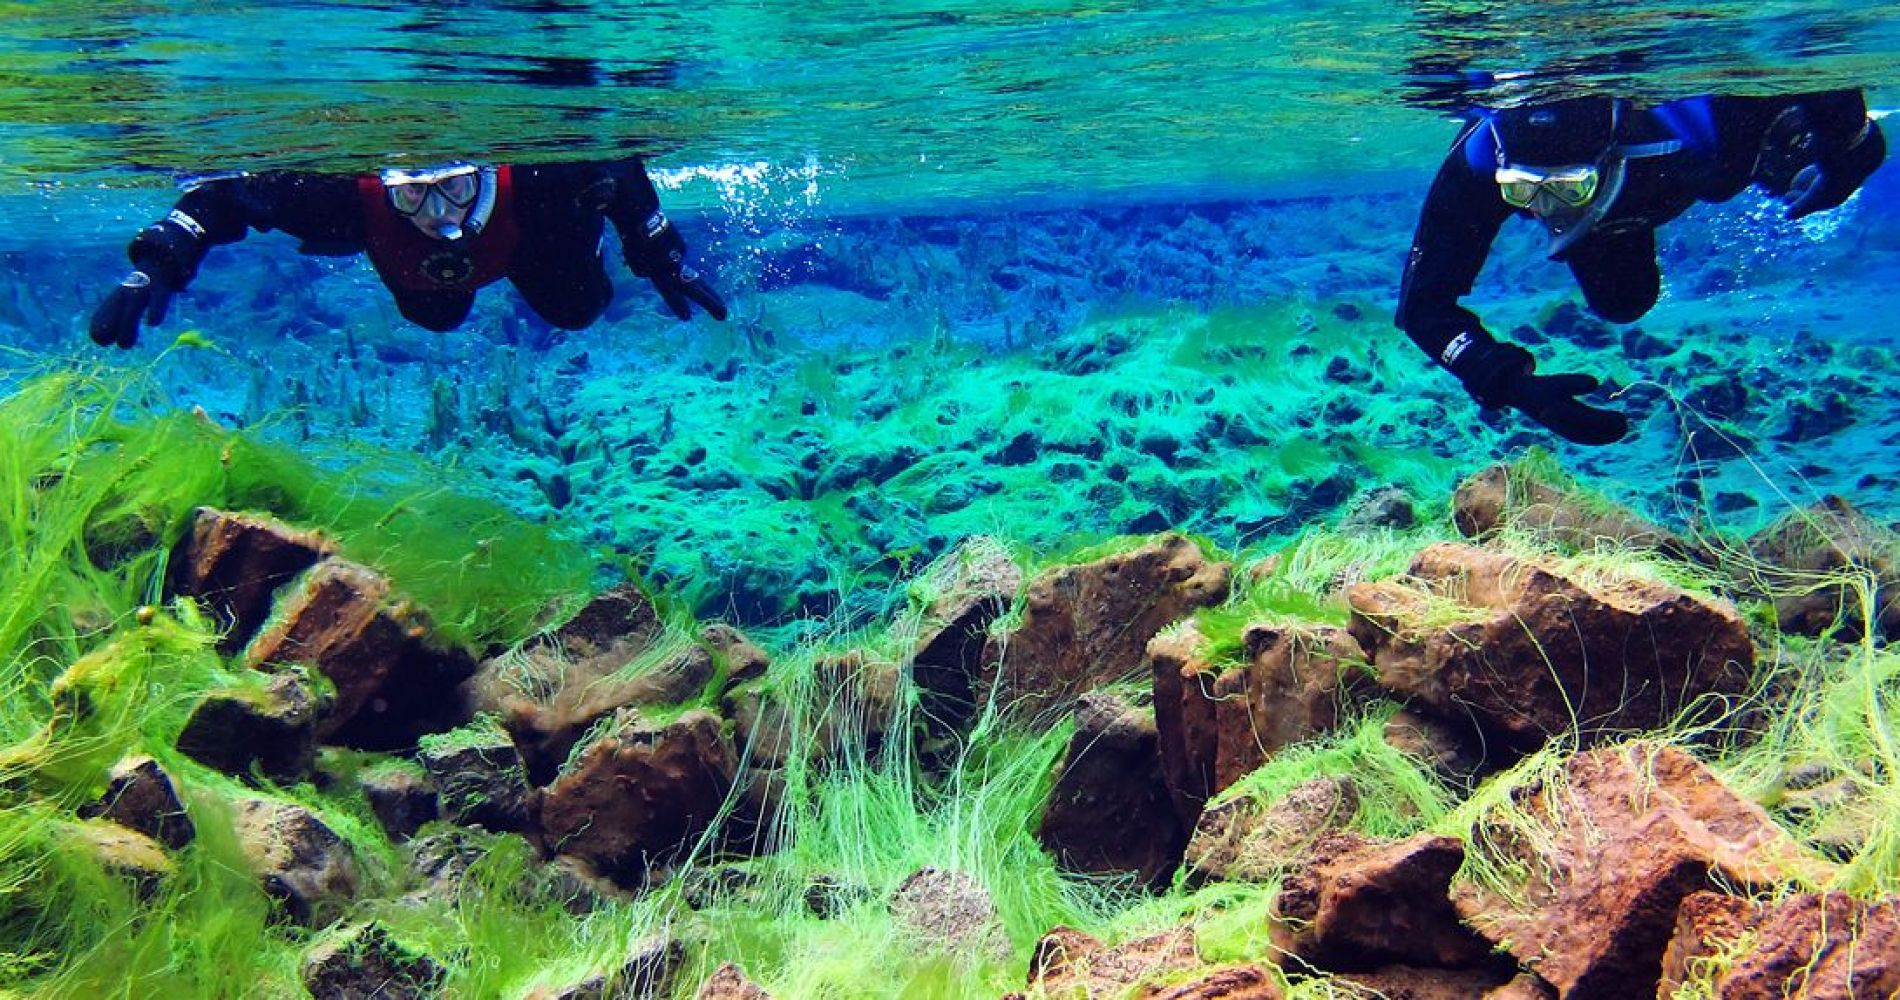 Snorkeling Silfra Day Experience in Thingvellir National Park, Iceland